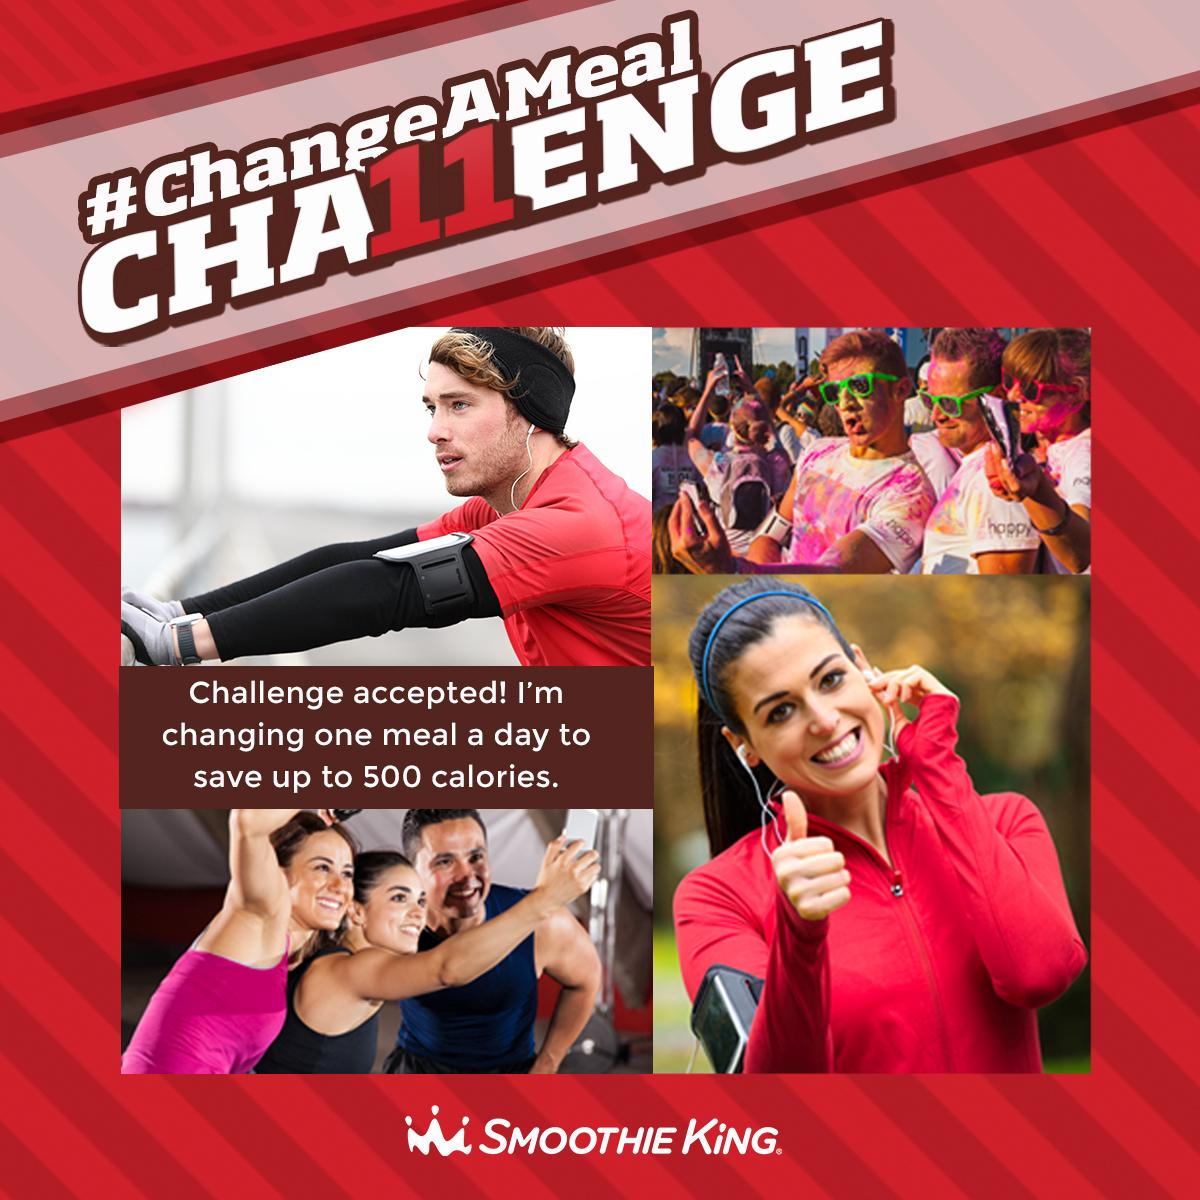 #ChangeAMeal with 1 of 11 Meal Replacement Smoothies. RT to sign-up and be entered to win Smoothie King gift cards! http://t.co/x0pBJj0N3w